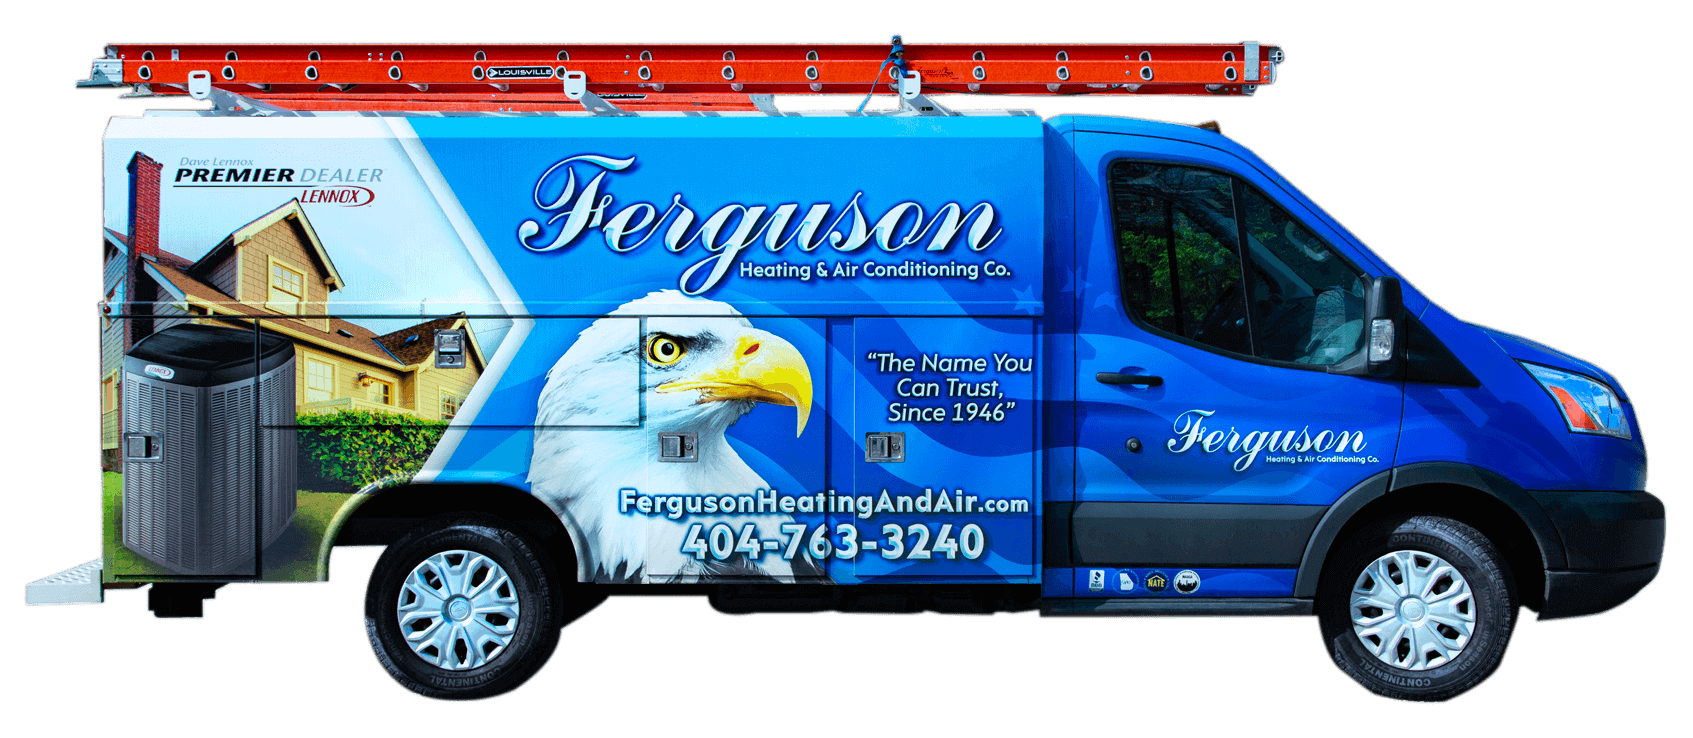 Ferguson Heating and Air Conditioning Company